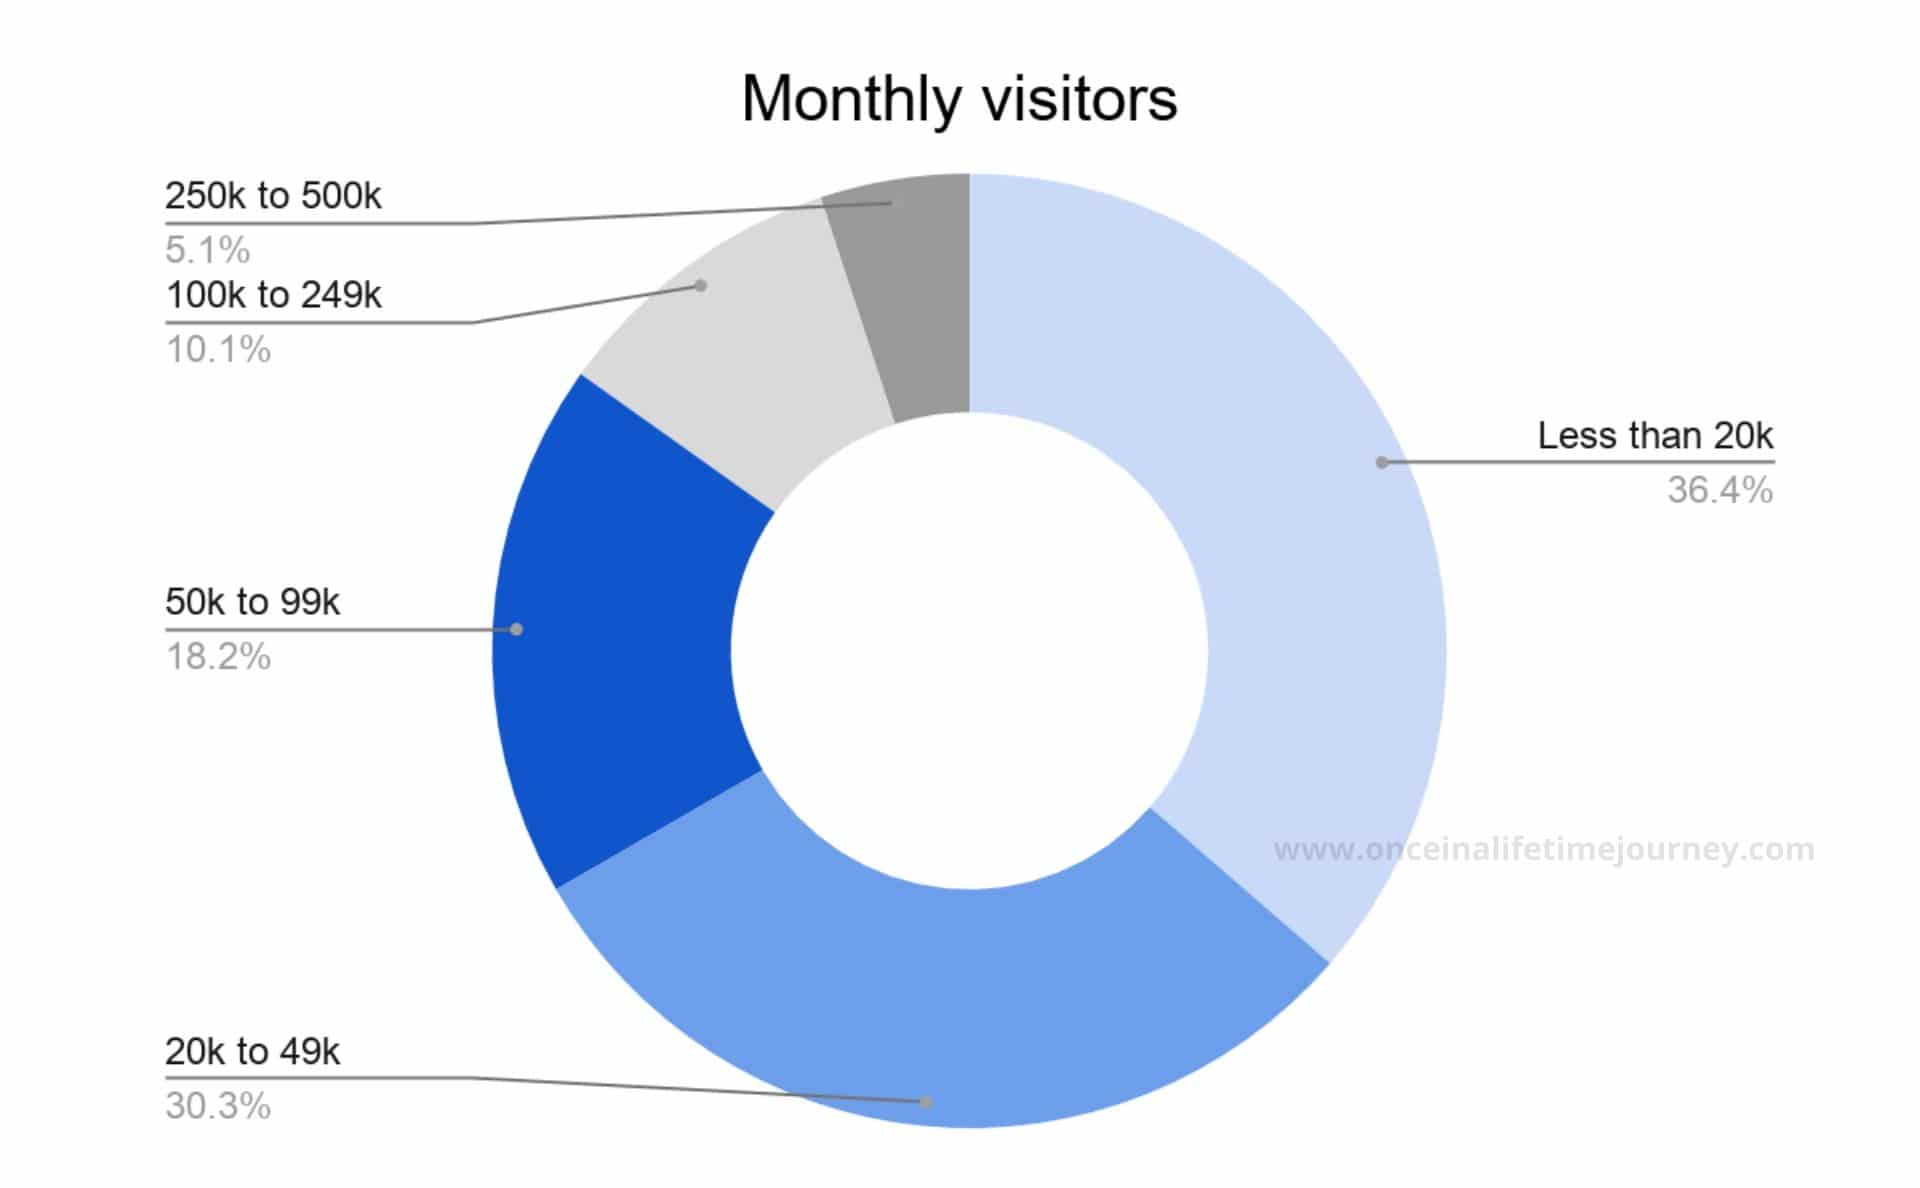 Monthly visitors to blogs